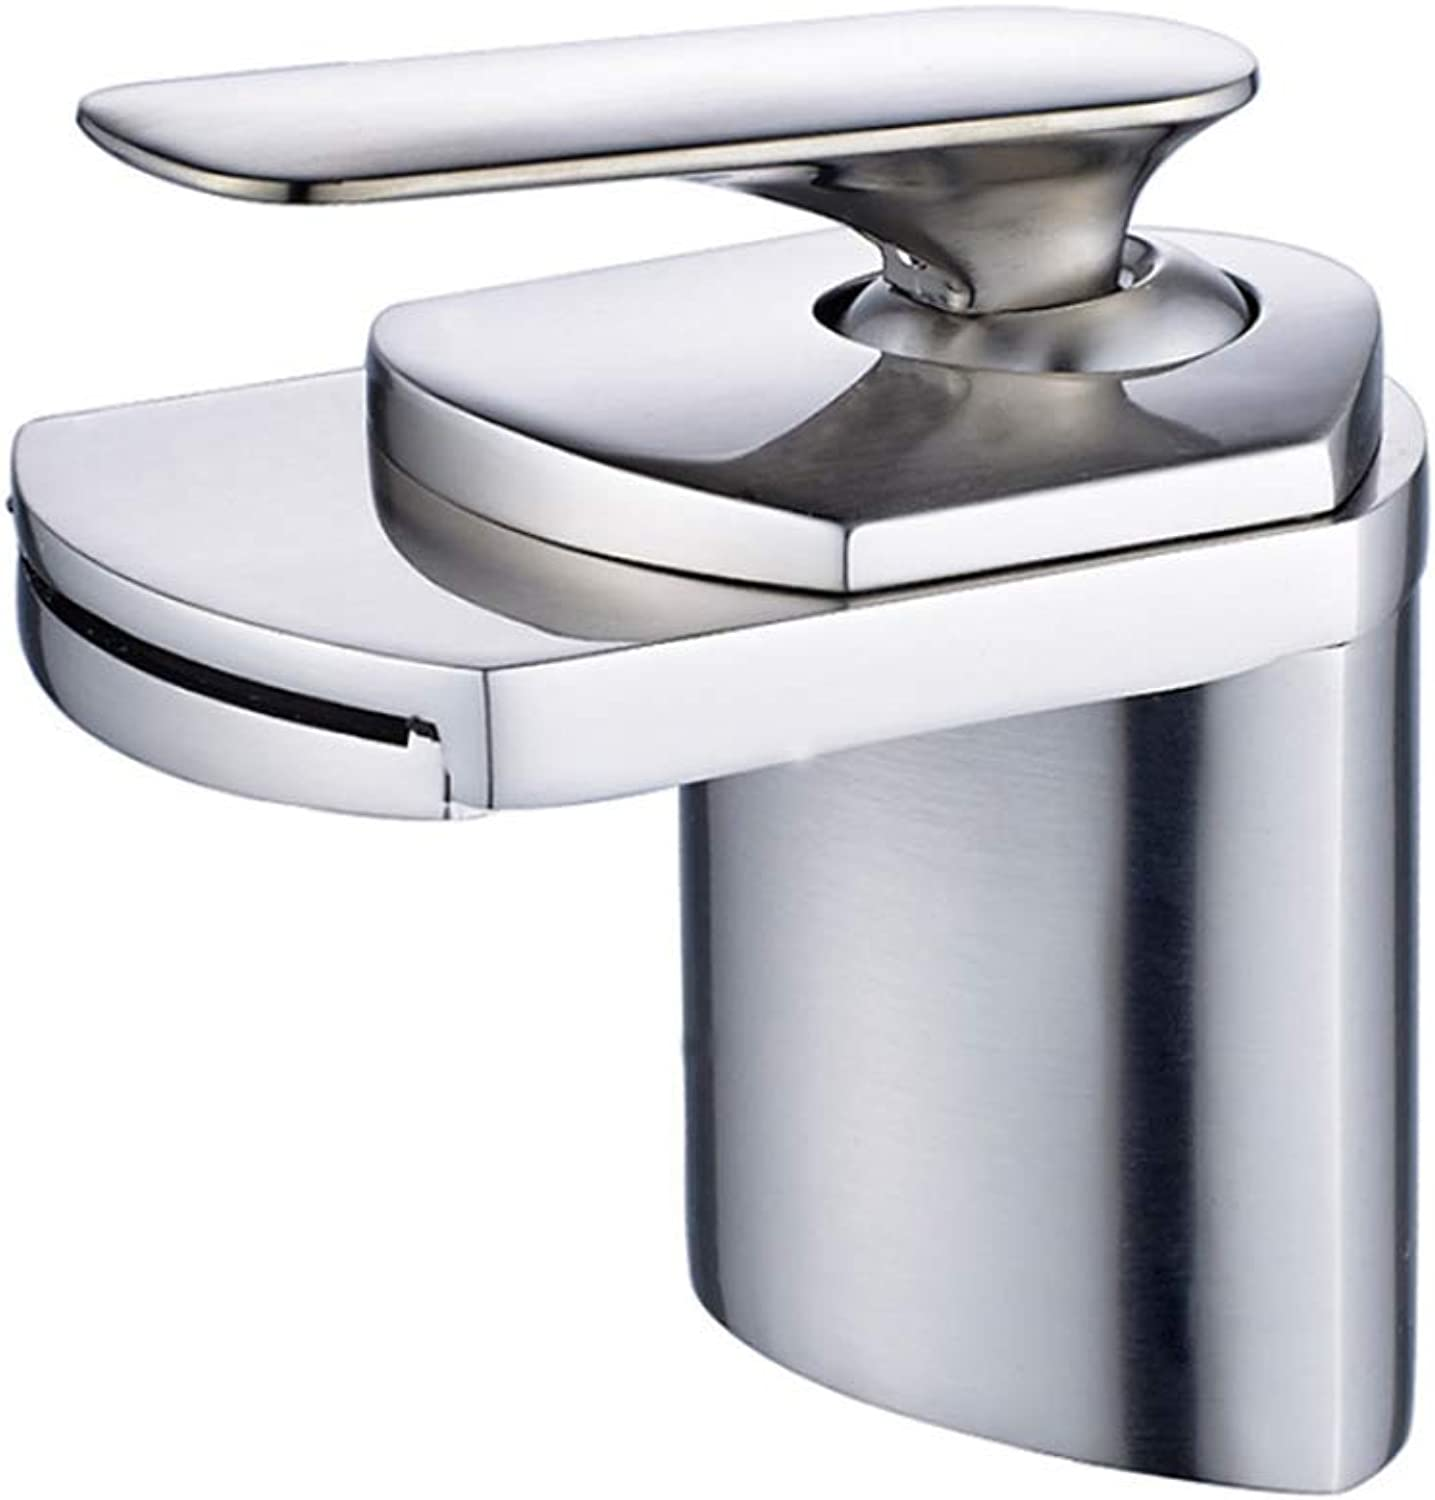 Pull Out The Pull Down Stainless Steeldeck Waterfall Mountain Basin Mixer, Faucet Brush, Nickel Width Tank, Ship Sink, Faucet